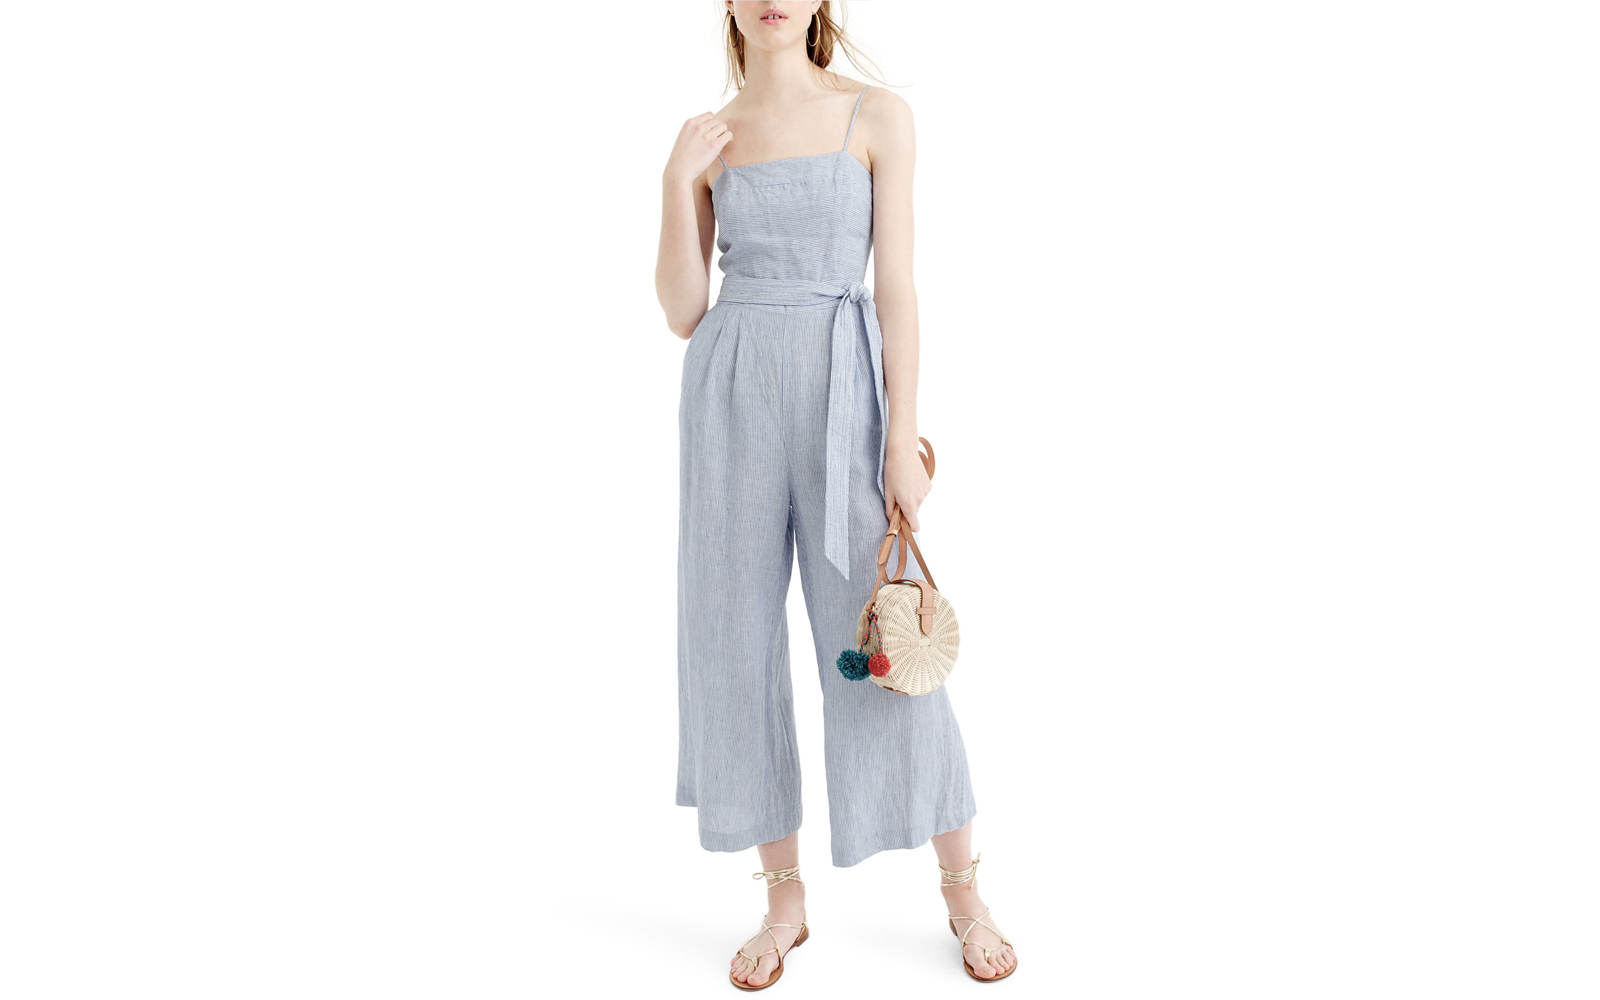 Chic and Comfy Jumpsuits for the Perfect One-and-done Vacation Outfit